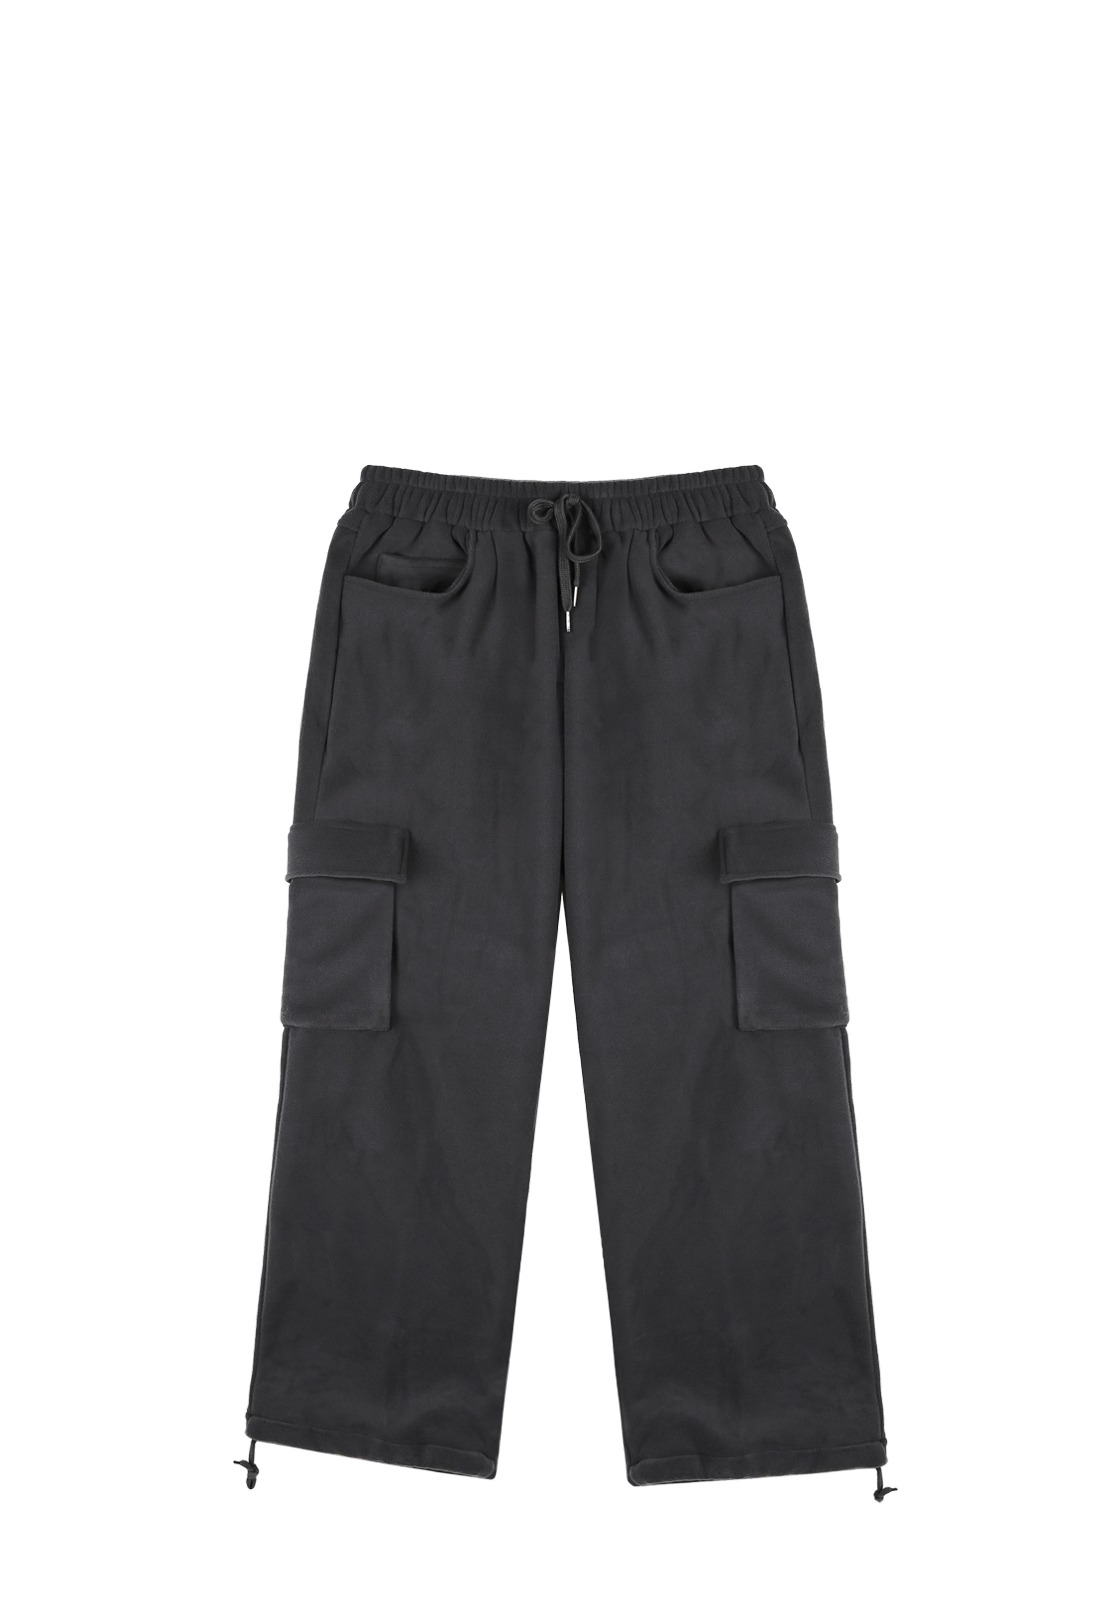 V254 FLEECE CARGO WIDE PANTS  CHARCOAL